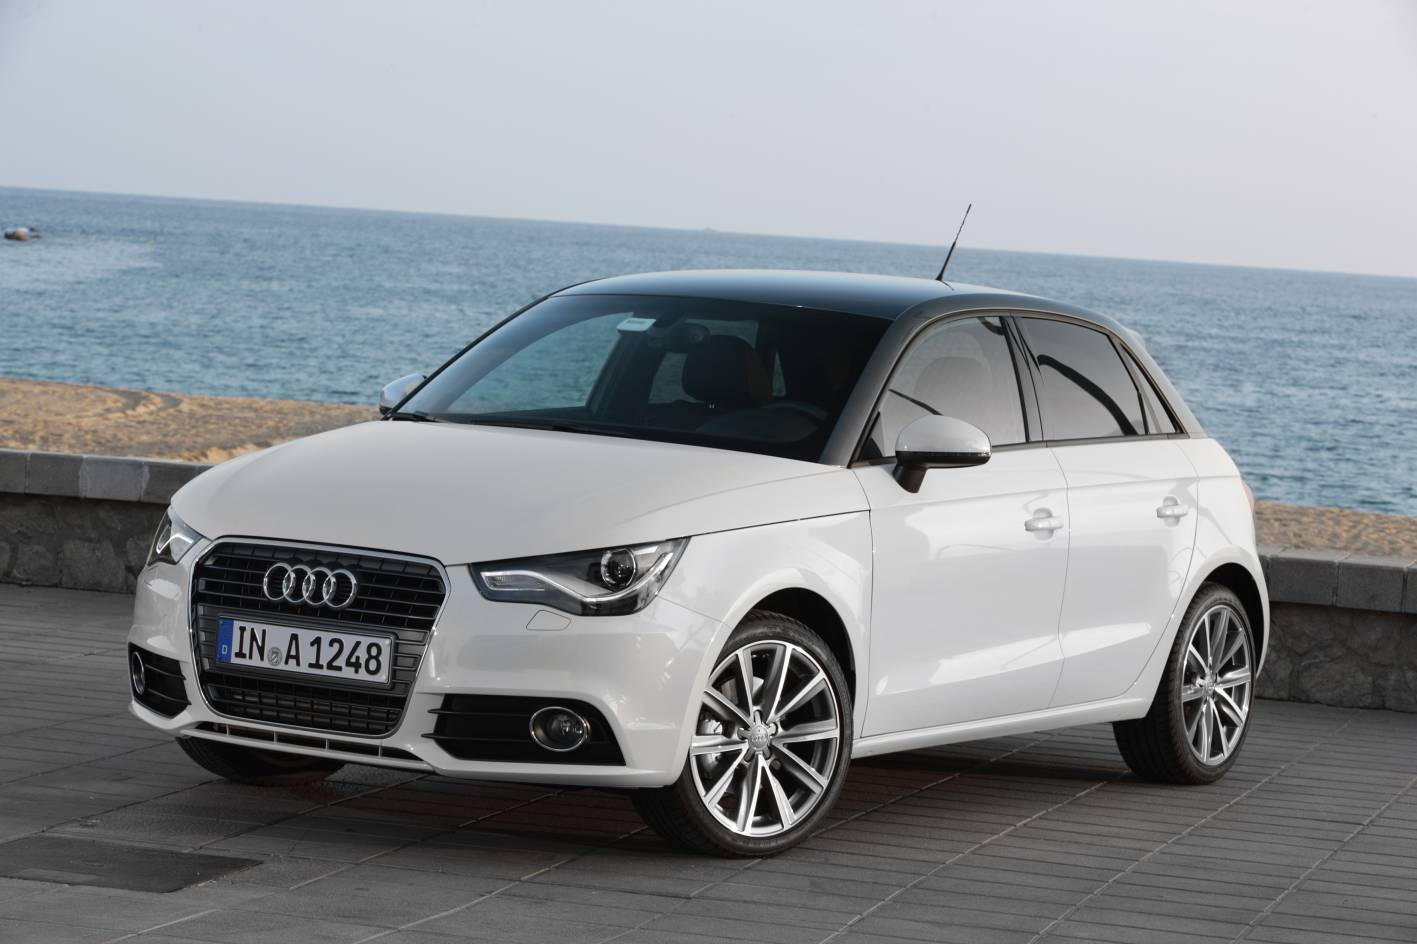 News Sportback Version Joins The Audi A1 Family